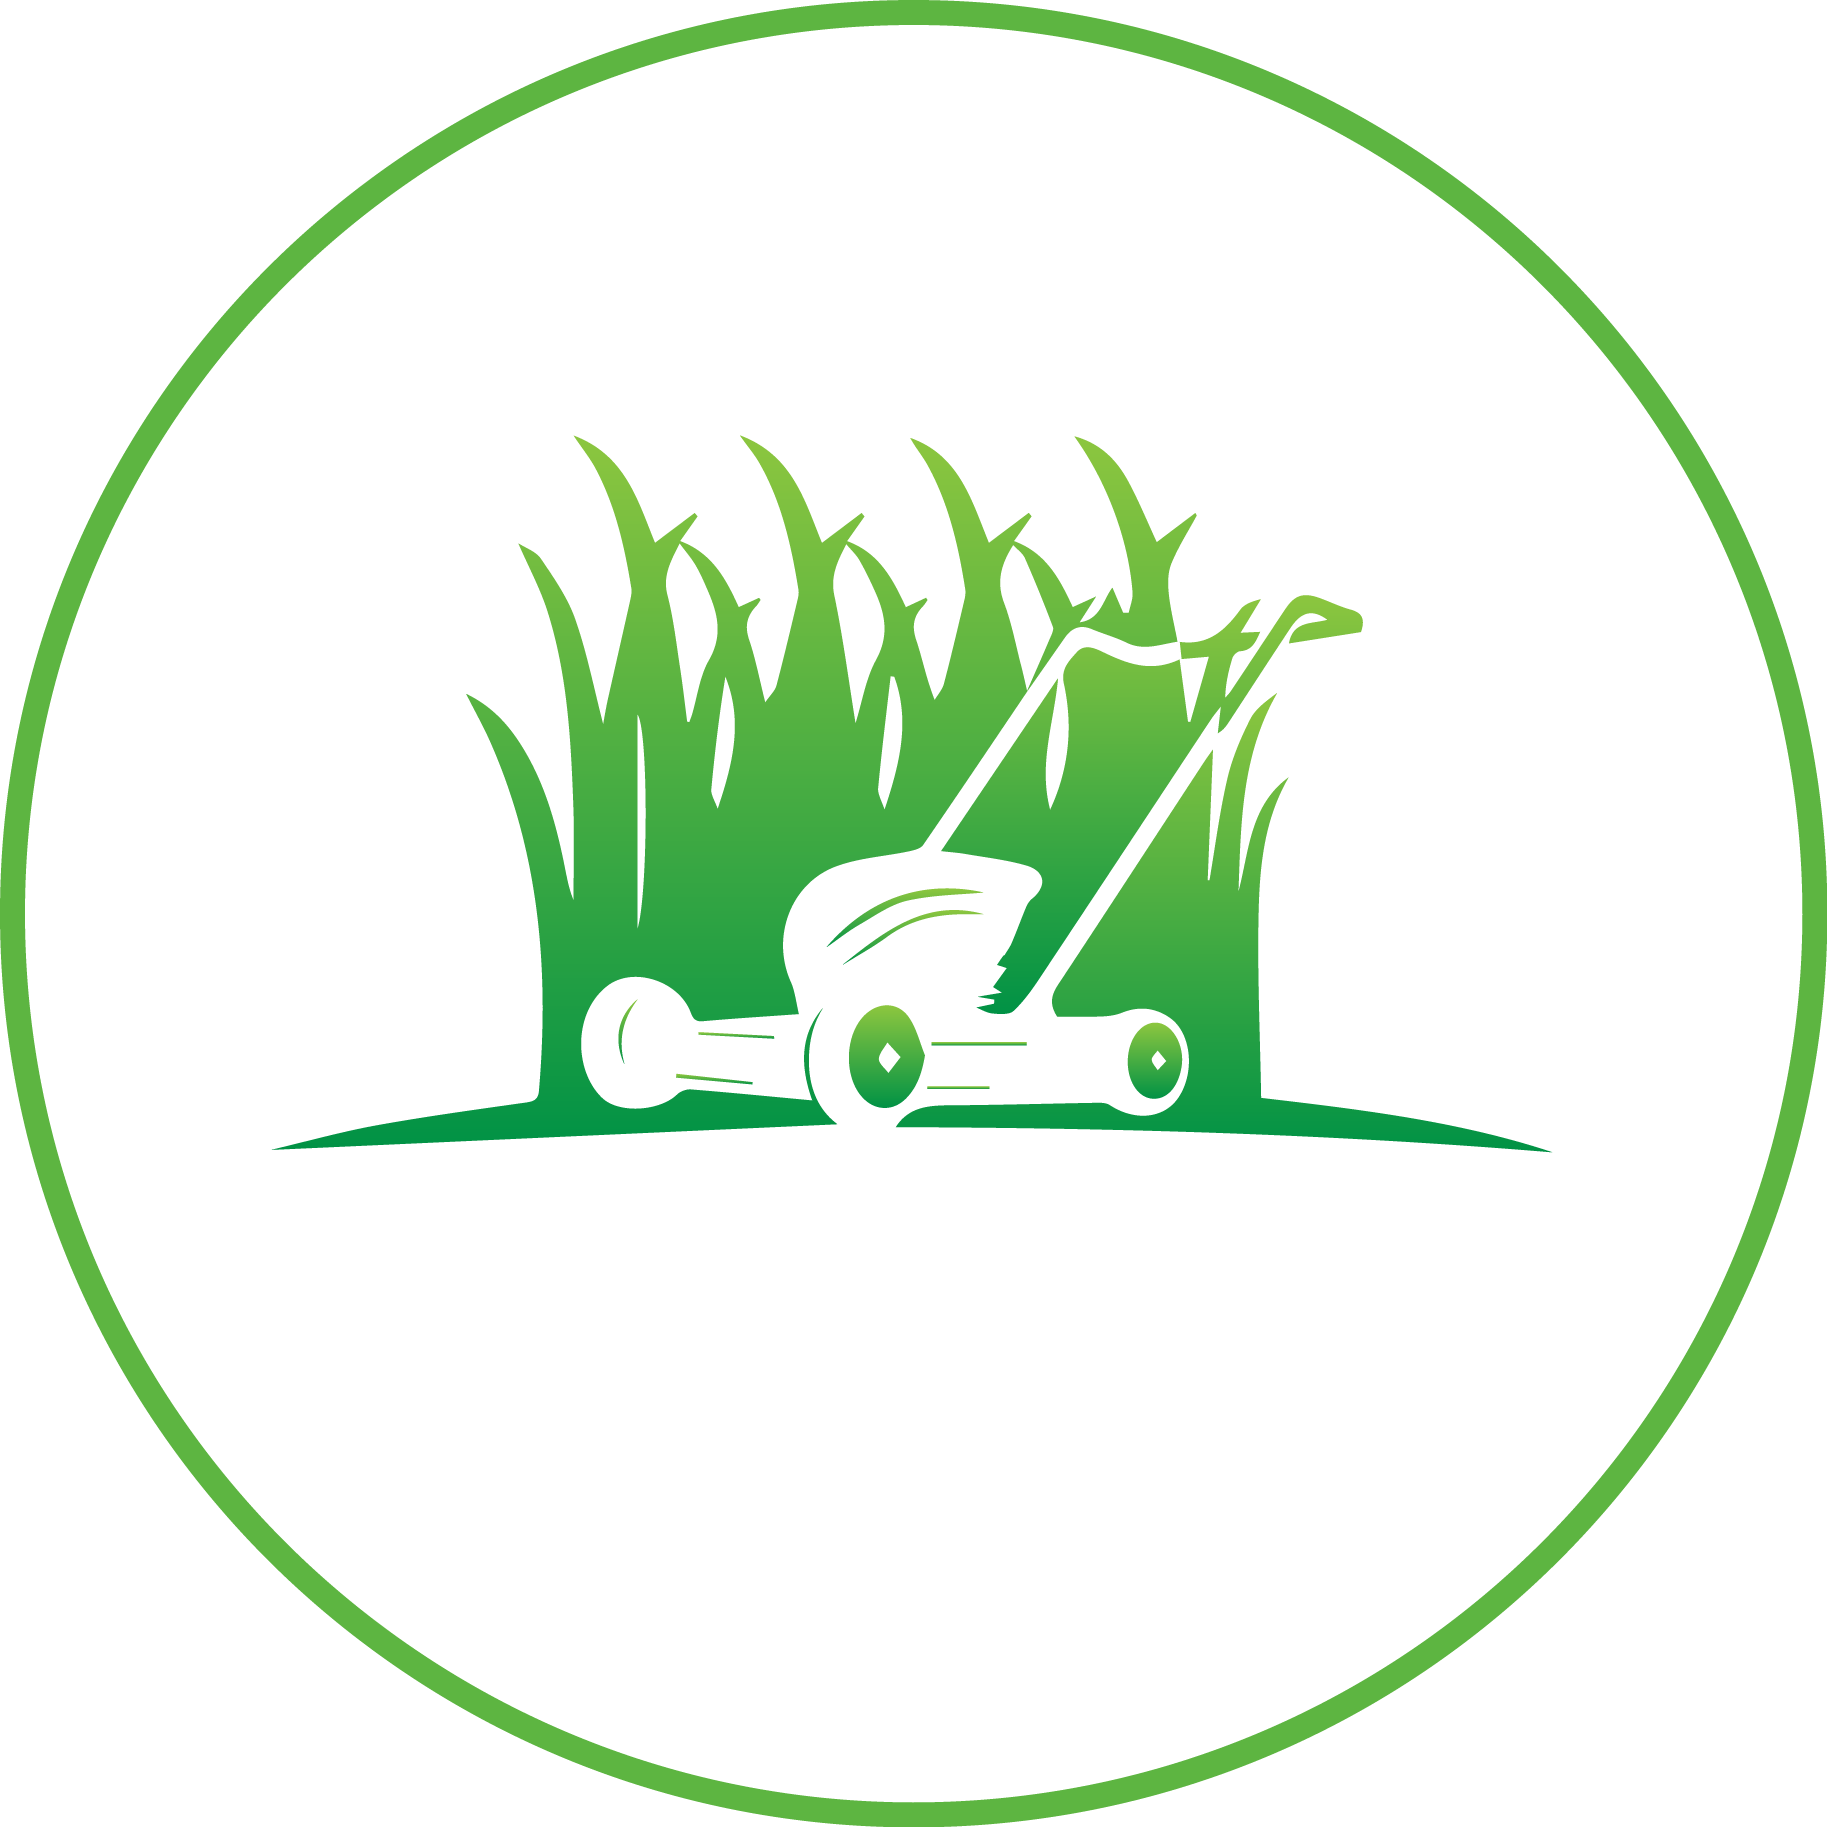 This is the Carlson Lawn Care Logo. Our services include mowing, trimming, lawn cleanup, sprinkler maintenance, and more.